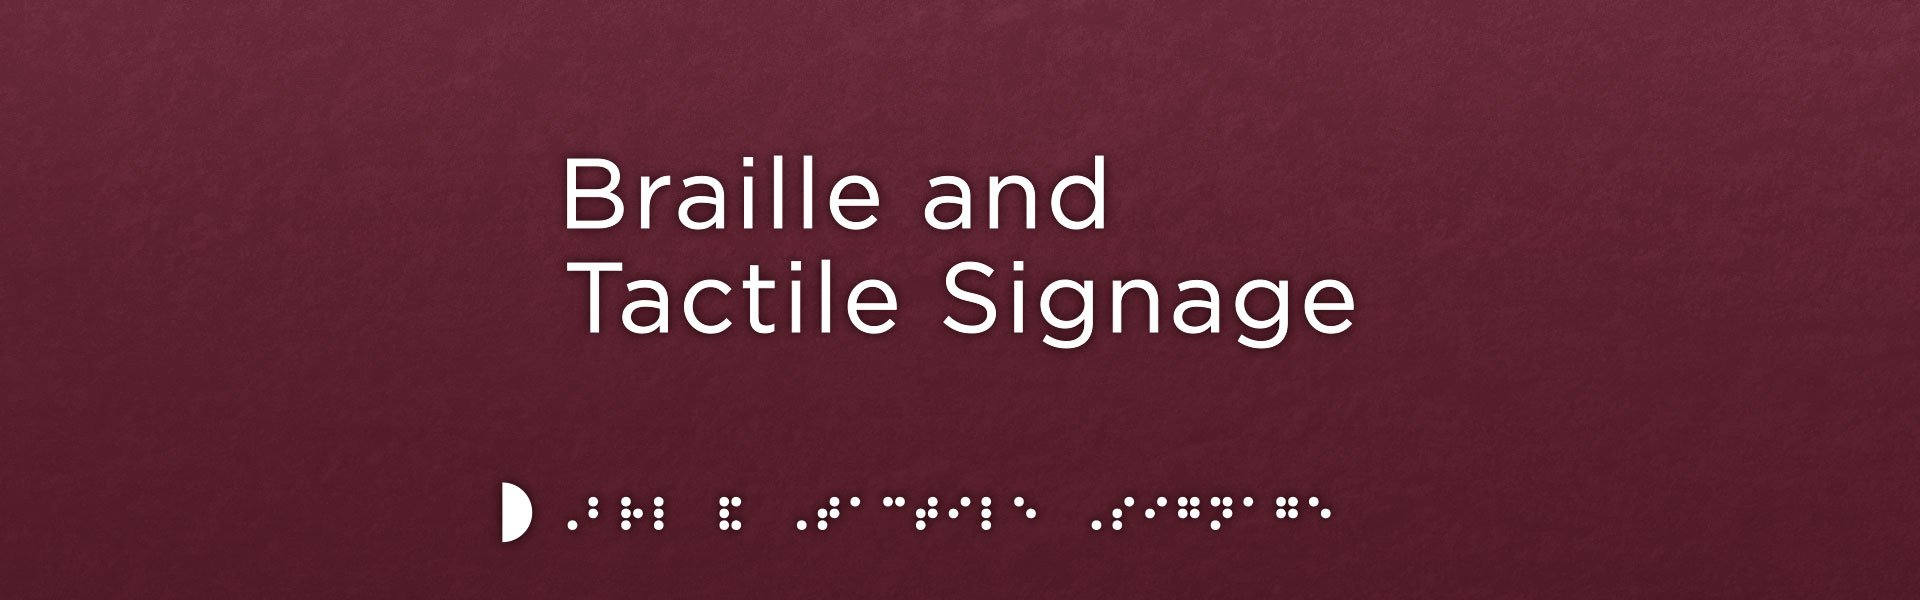 DDA Braille and Tactile signage